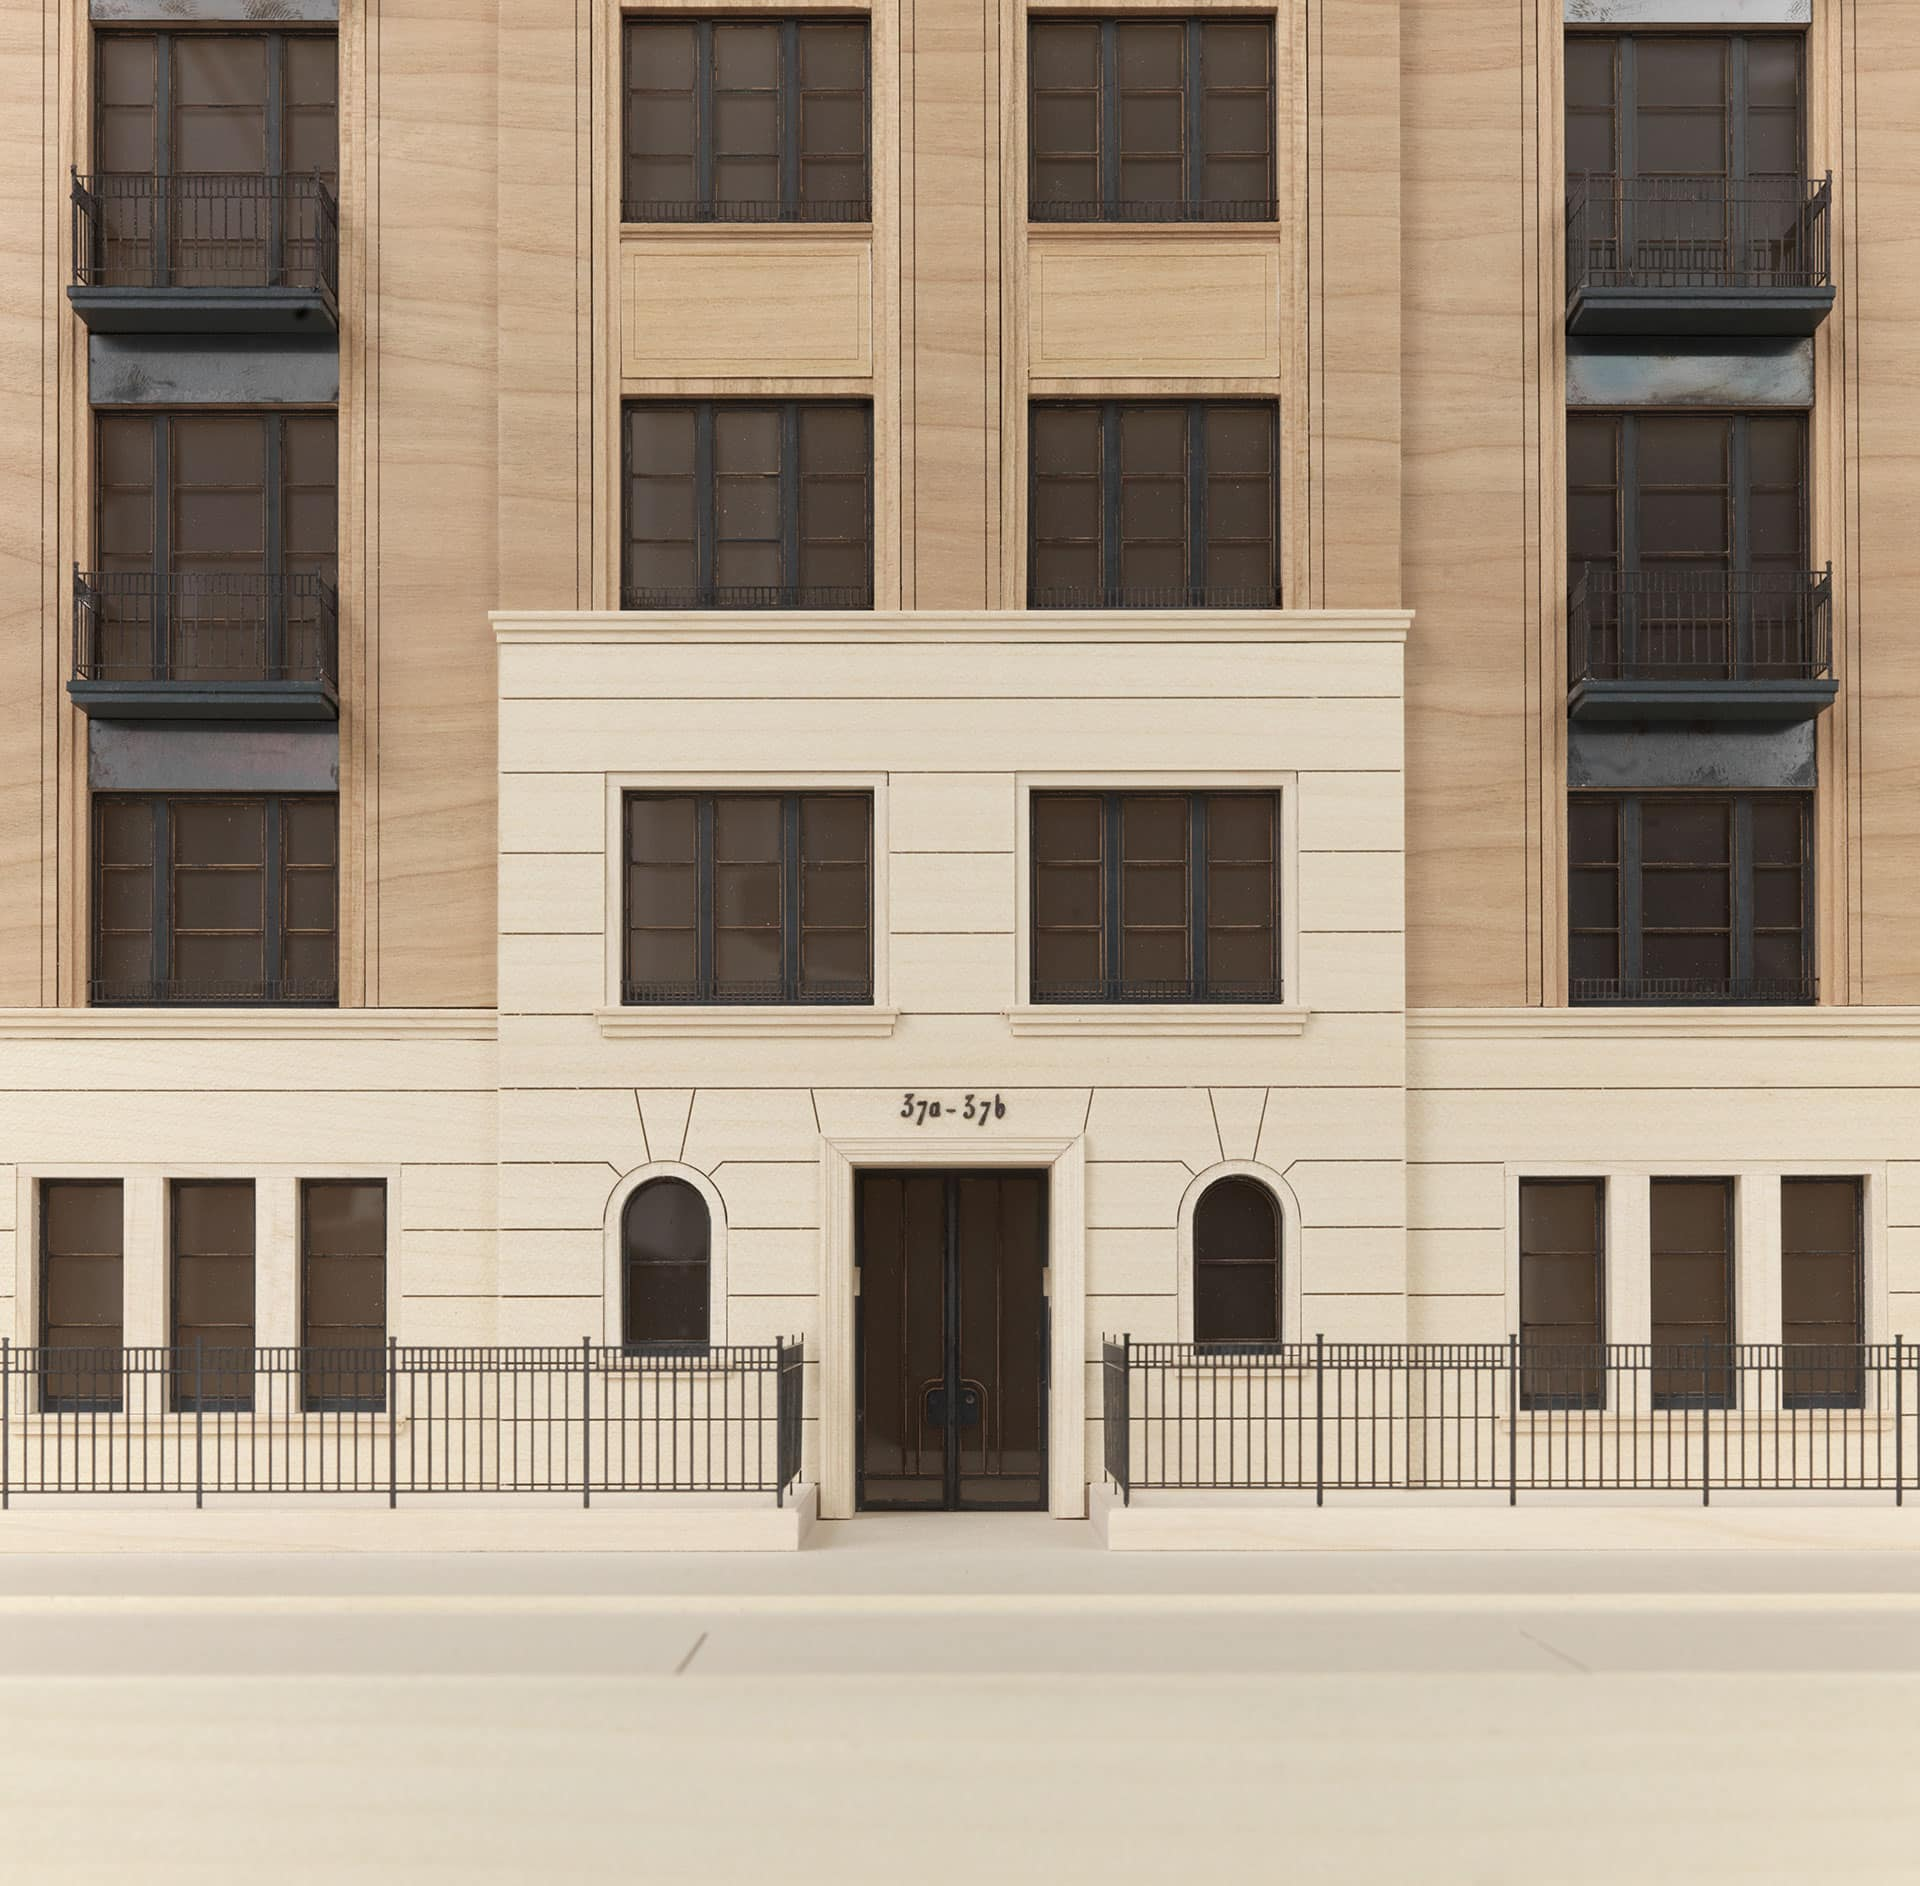 Windows, parapets and railings of the model are manufactured in blackened bronze